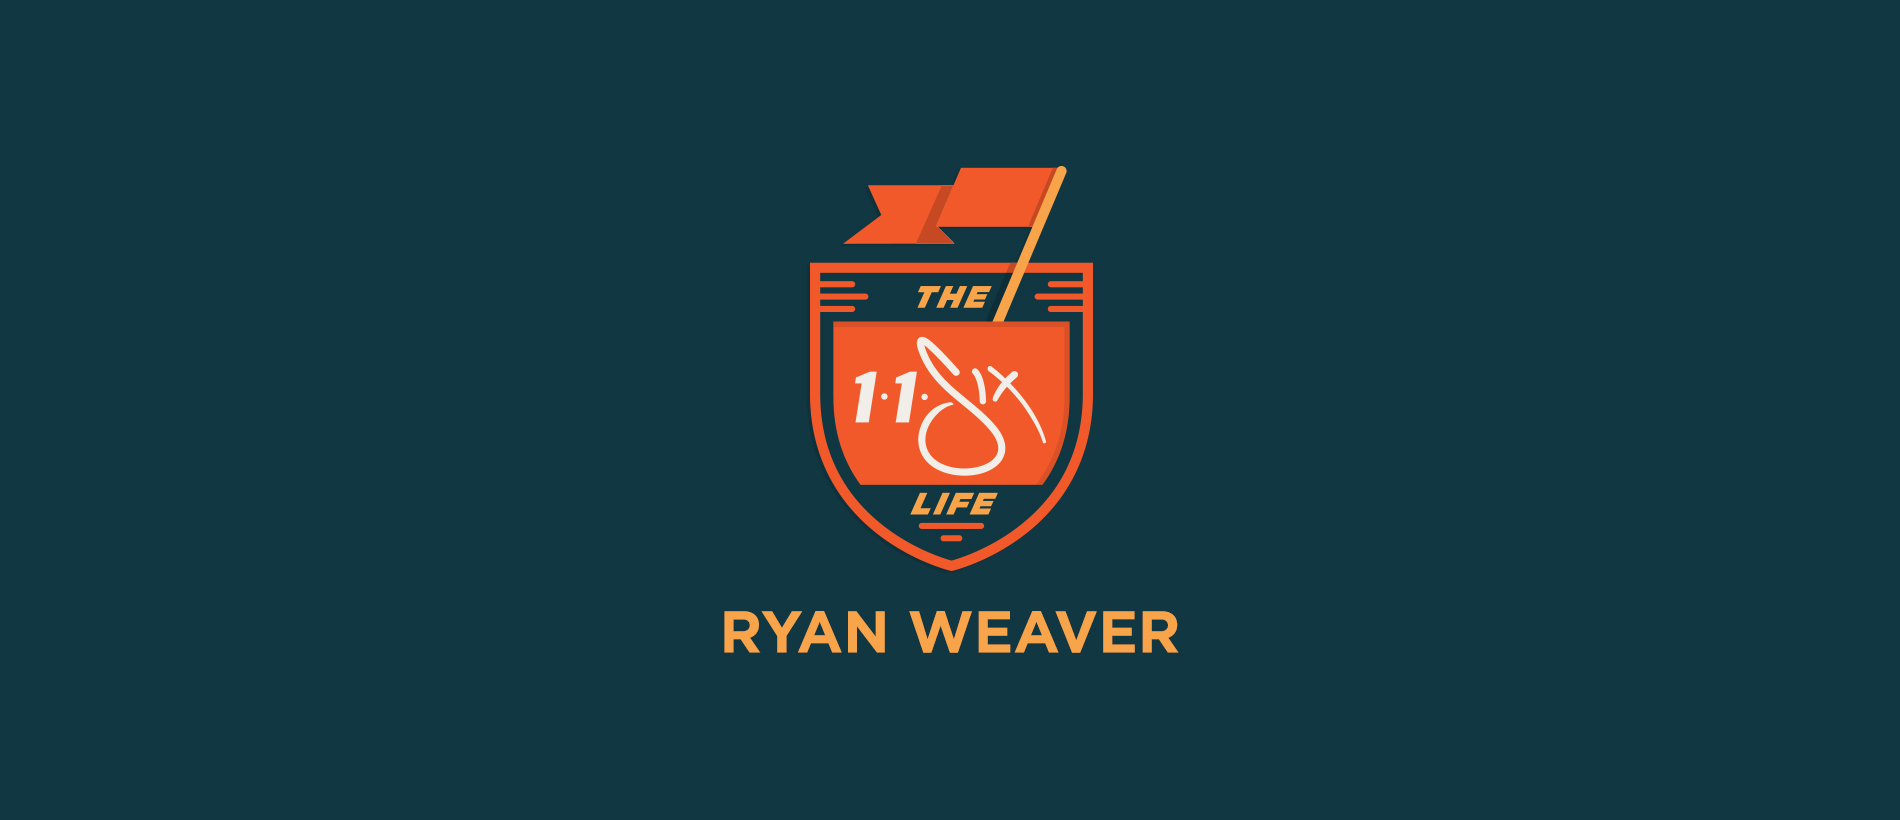 The 116 Life x Ryan Weaver